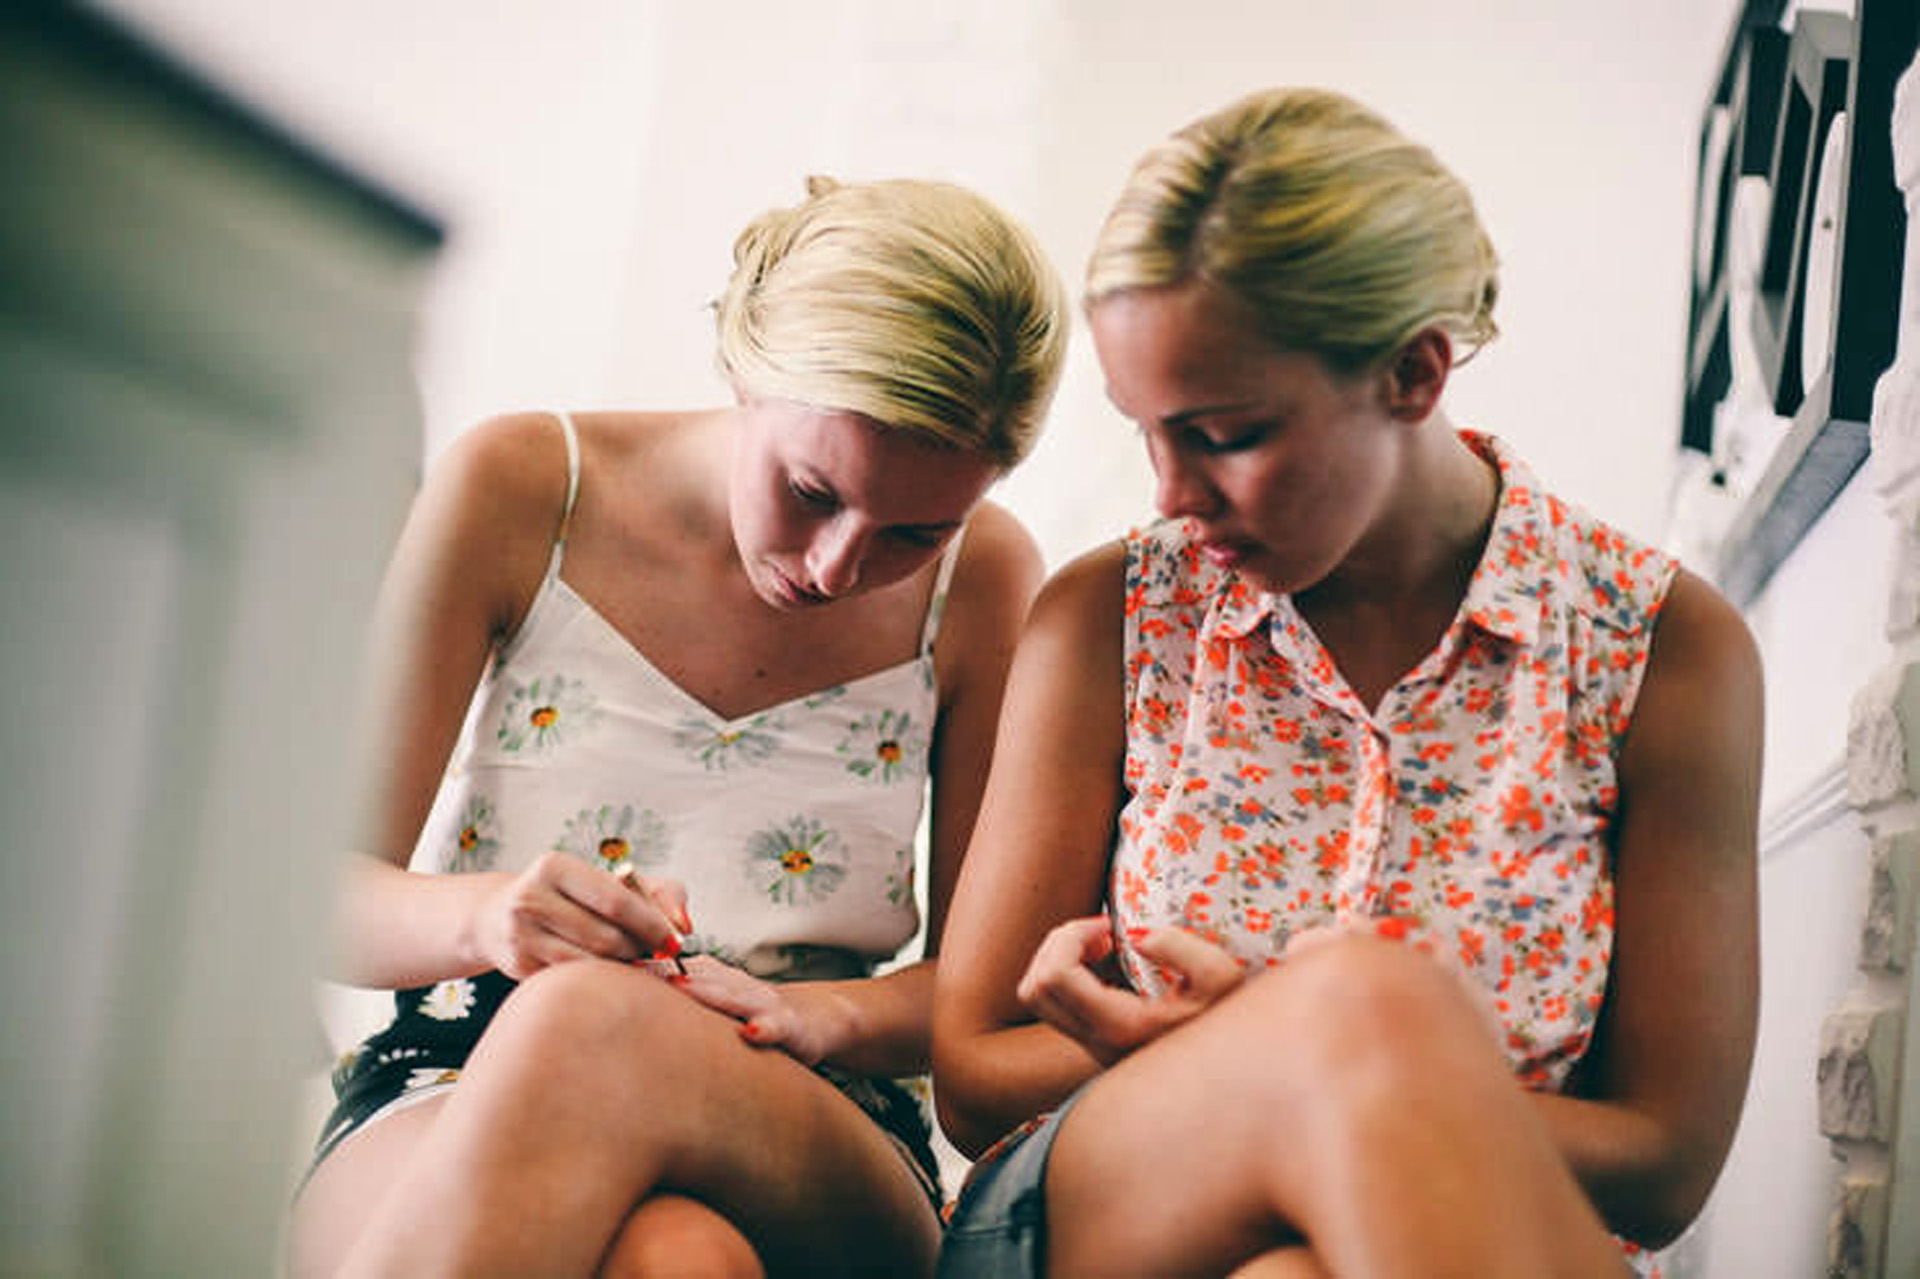 Oludeniz, Fethiye, Turkey Destination Elopement Photography | The bride's sisters work on applying their own nail polish